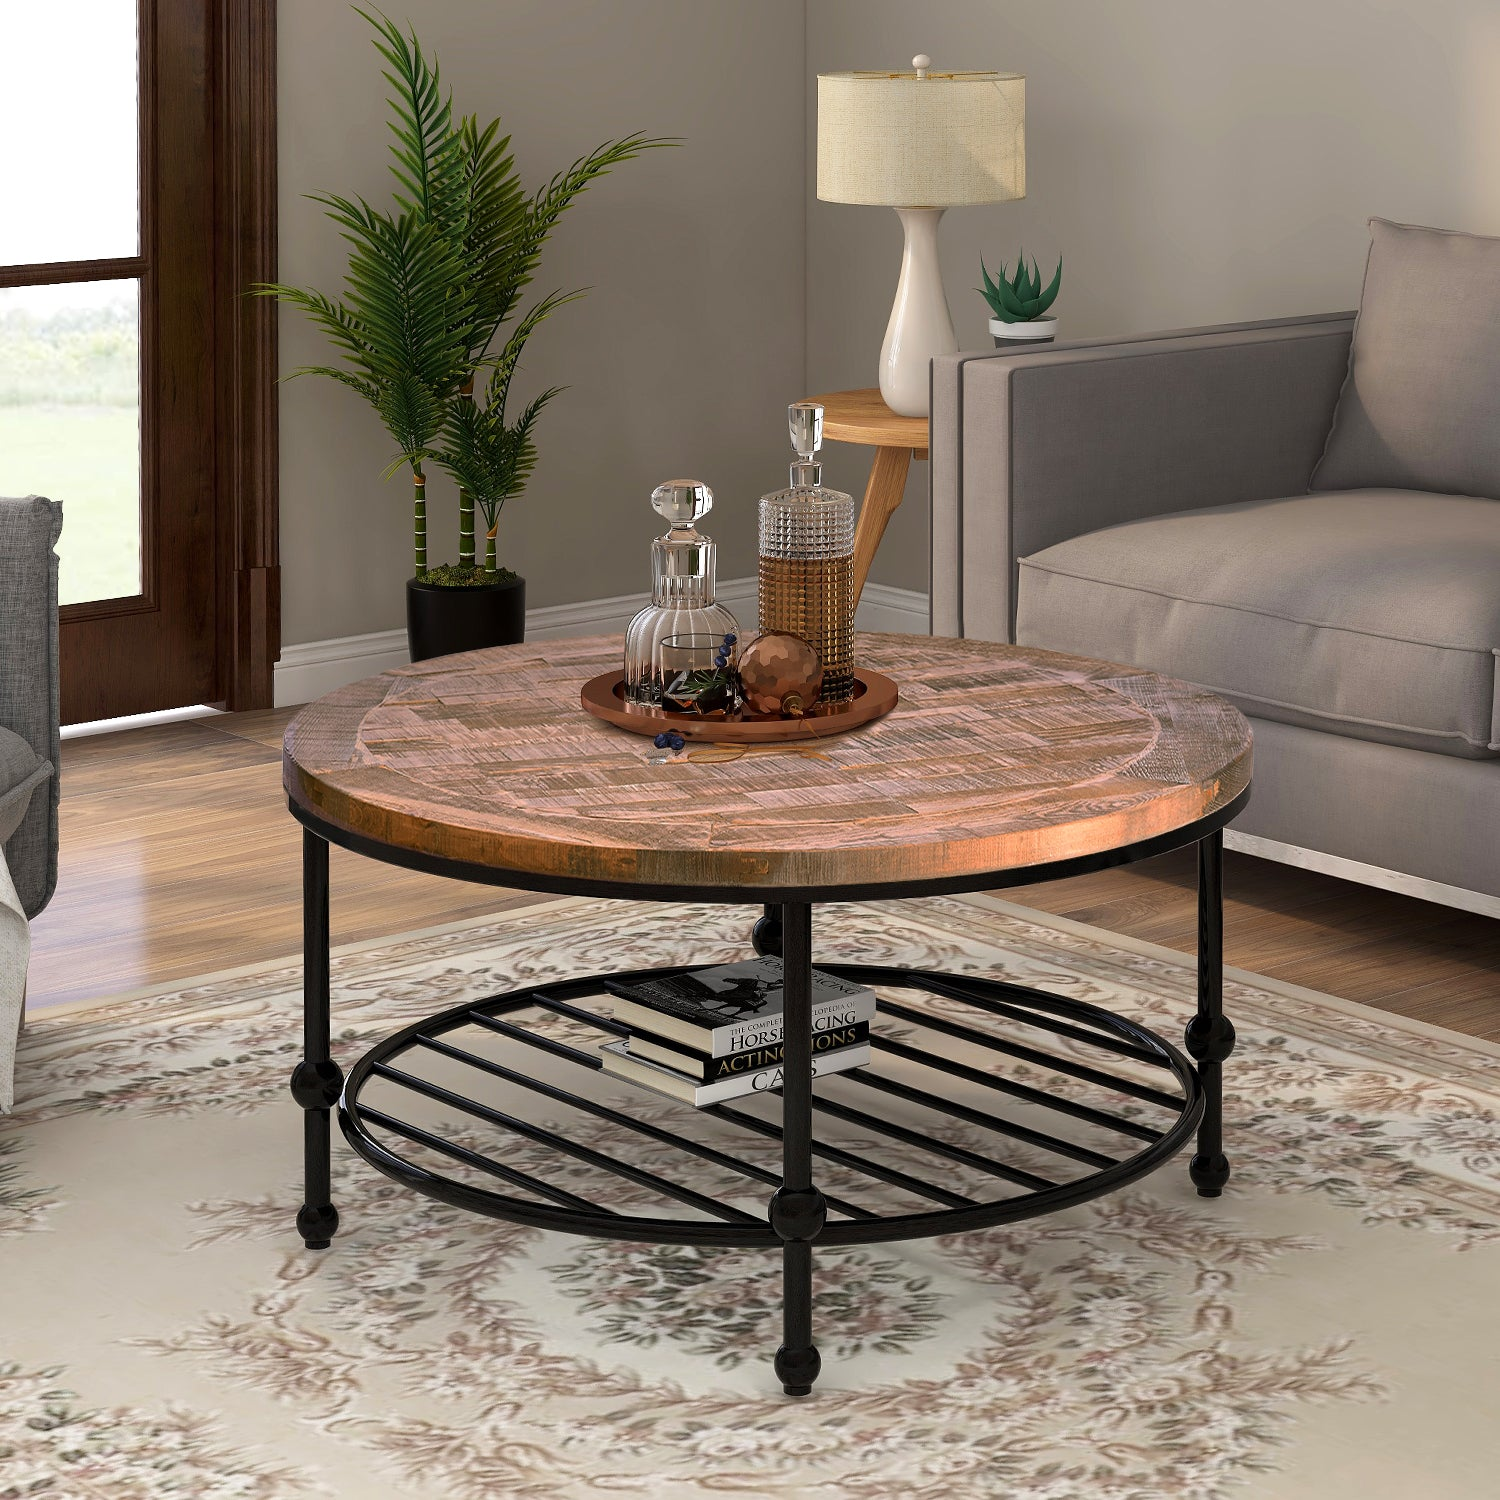 Rustic Natural Round Coffee Table with Storage Shelf for Living Room Easy Assembly